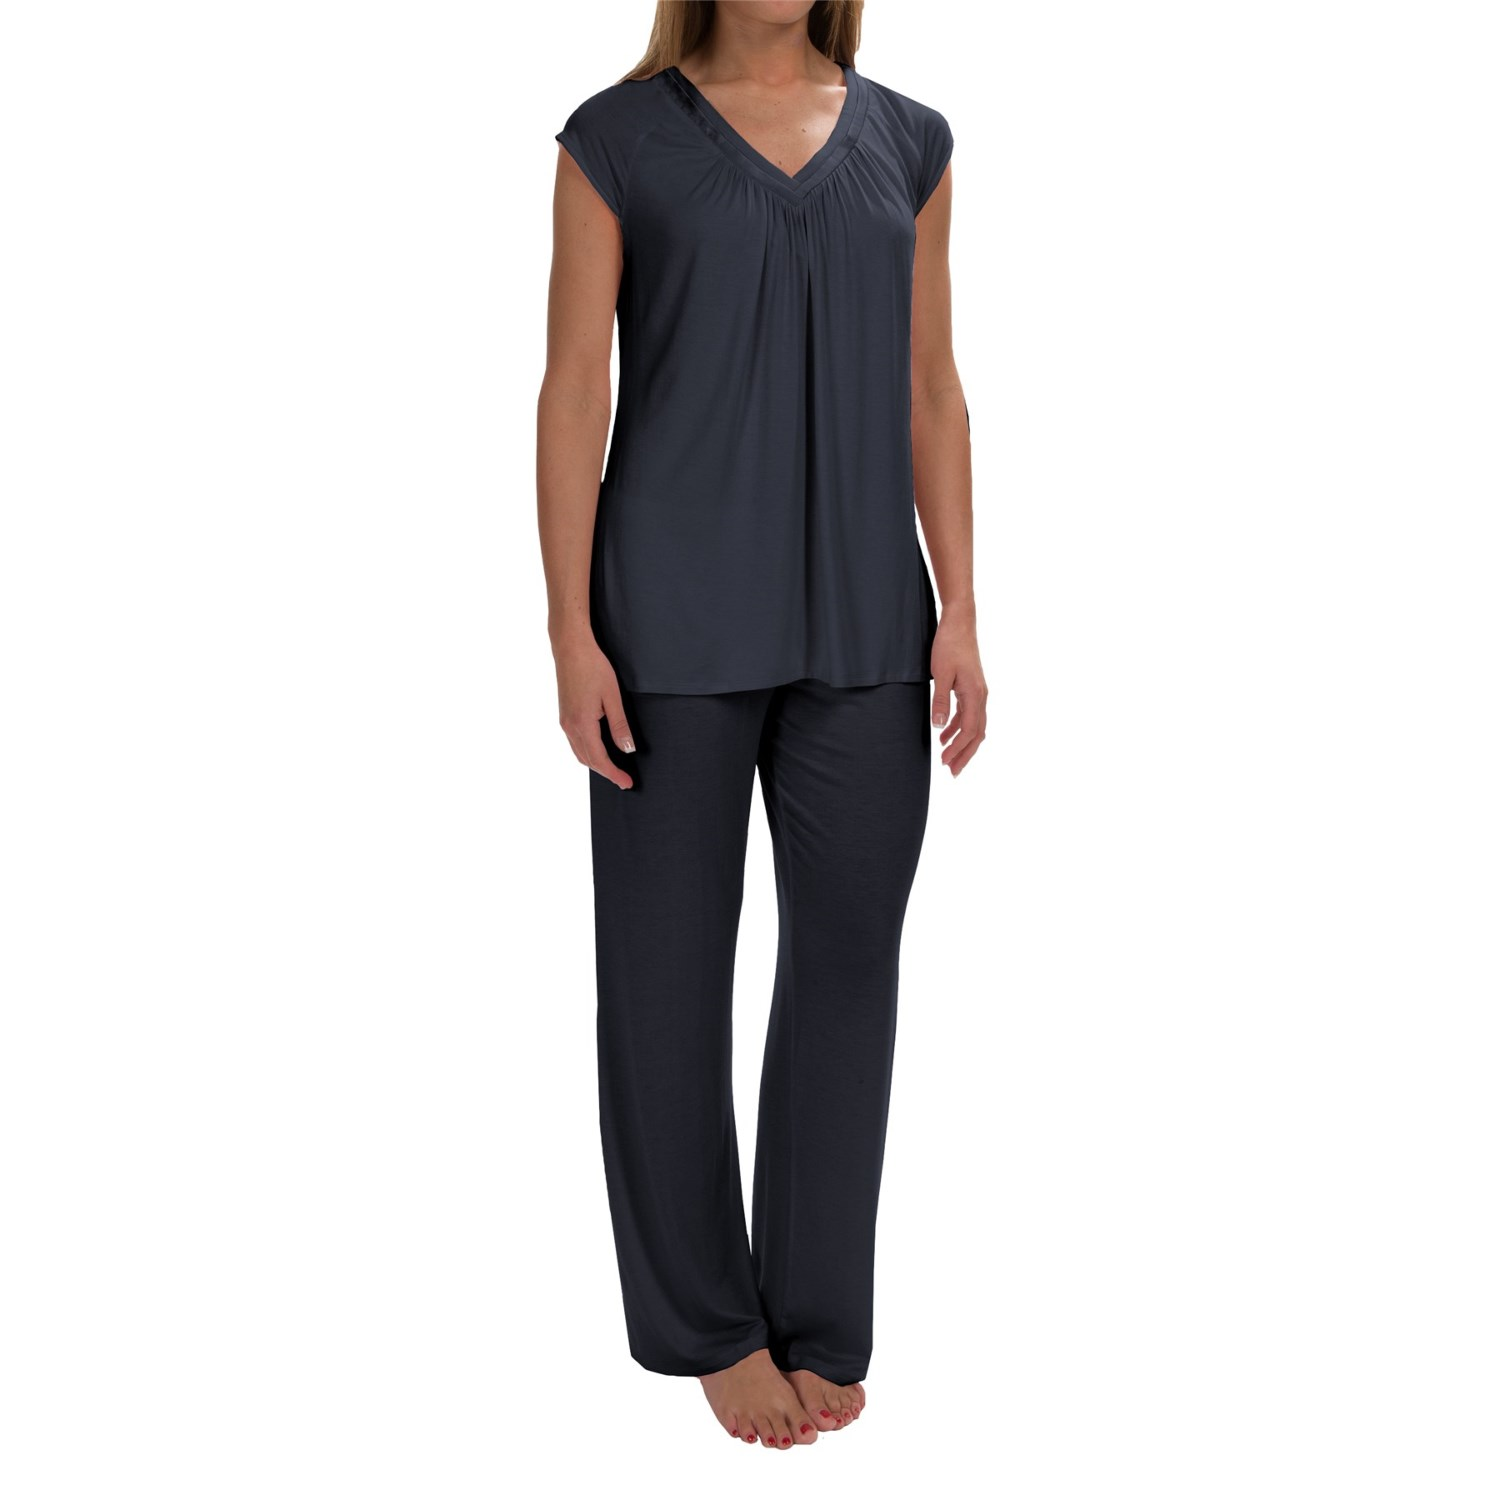 63eb53d82c Midnight by Carole Hochman Core Modal Pajamas (For Women) 146YT 63 ...